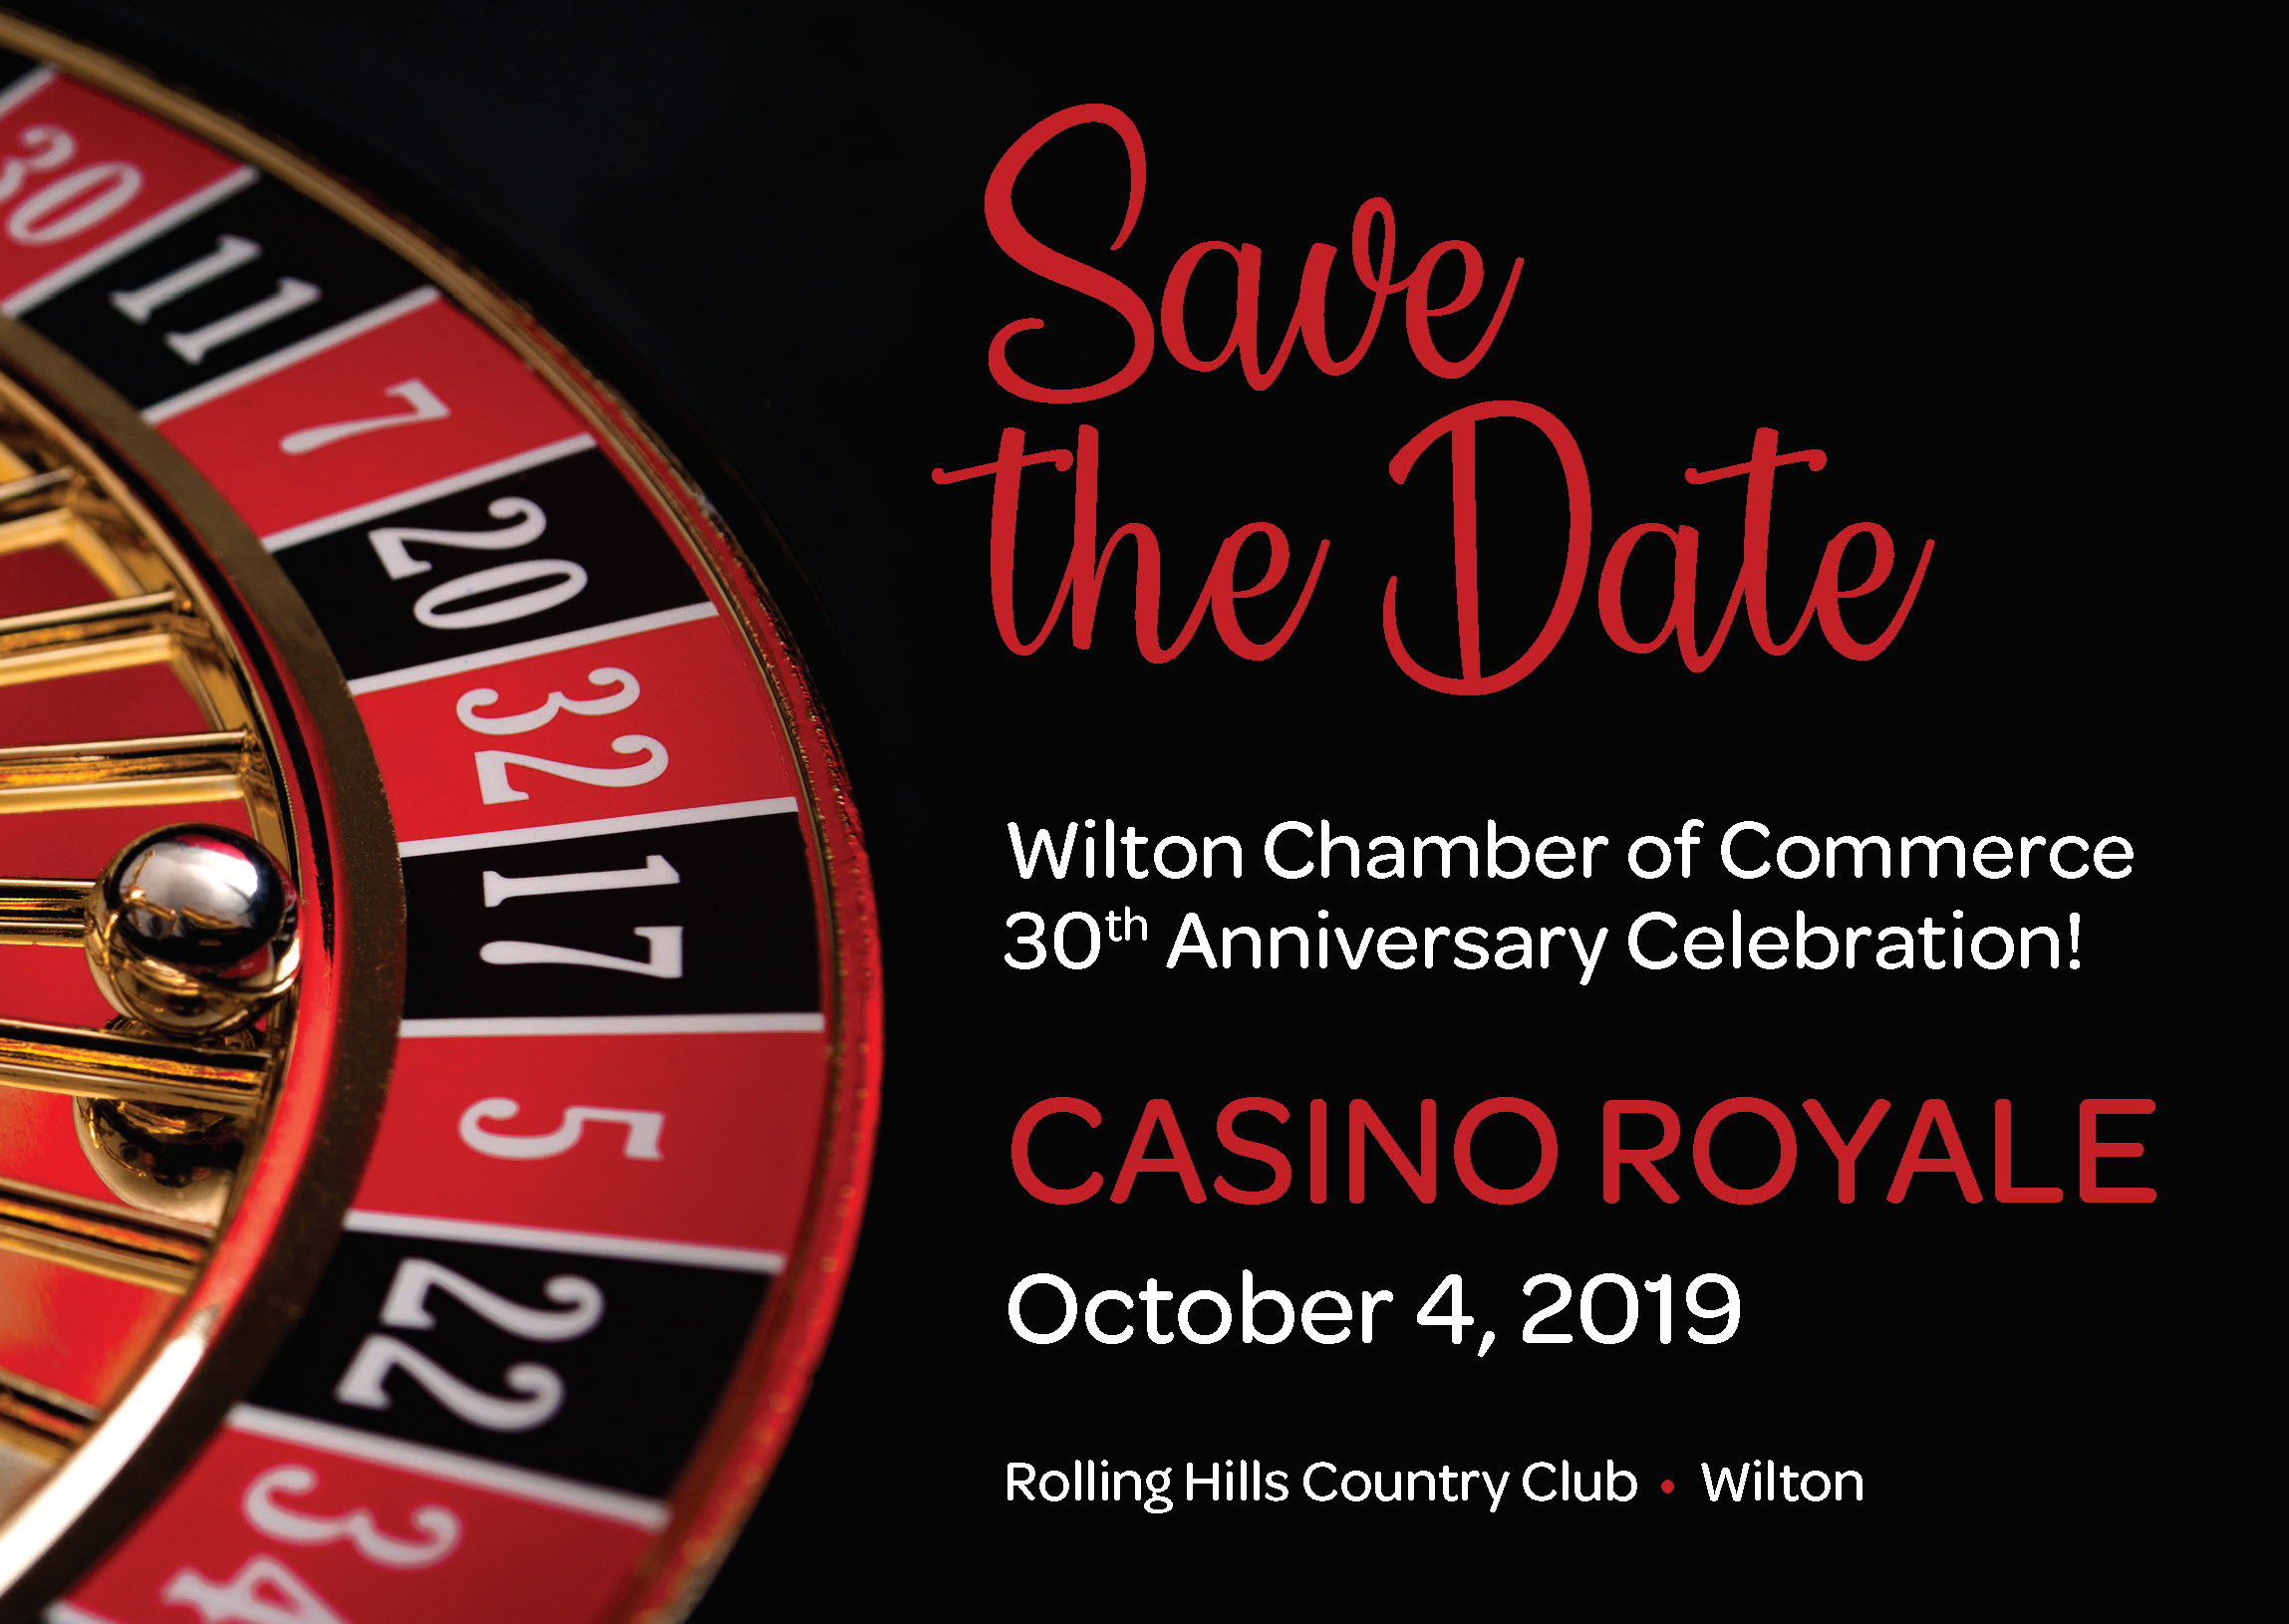 Celebrate Wilton Chamber's 30th Anniversary at Casino Royale